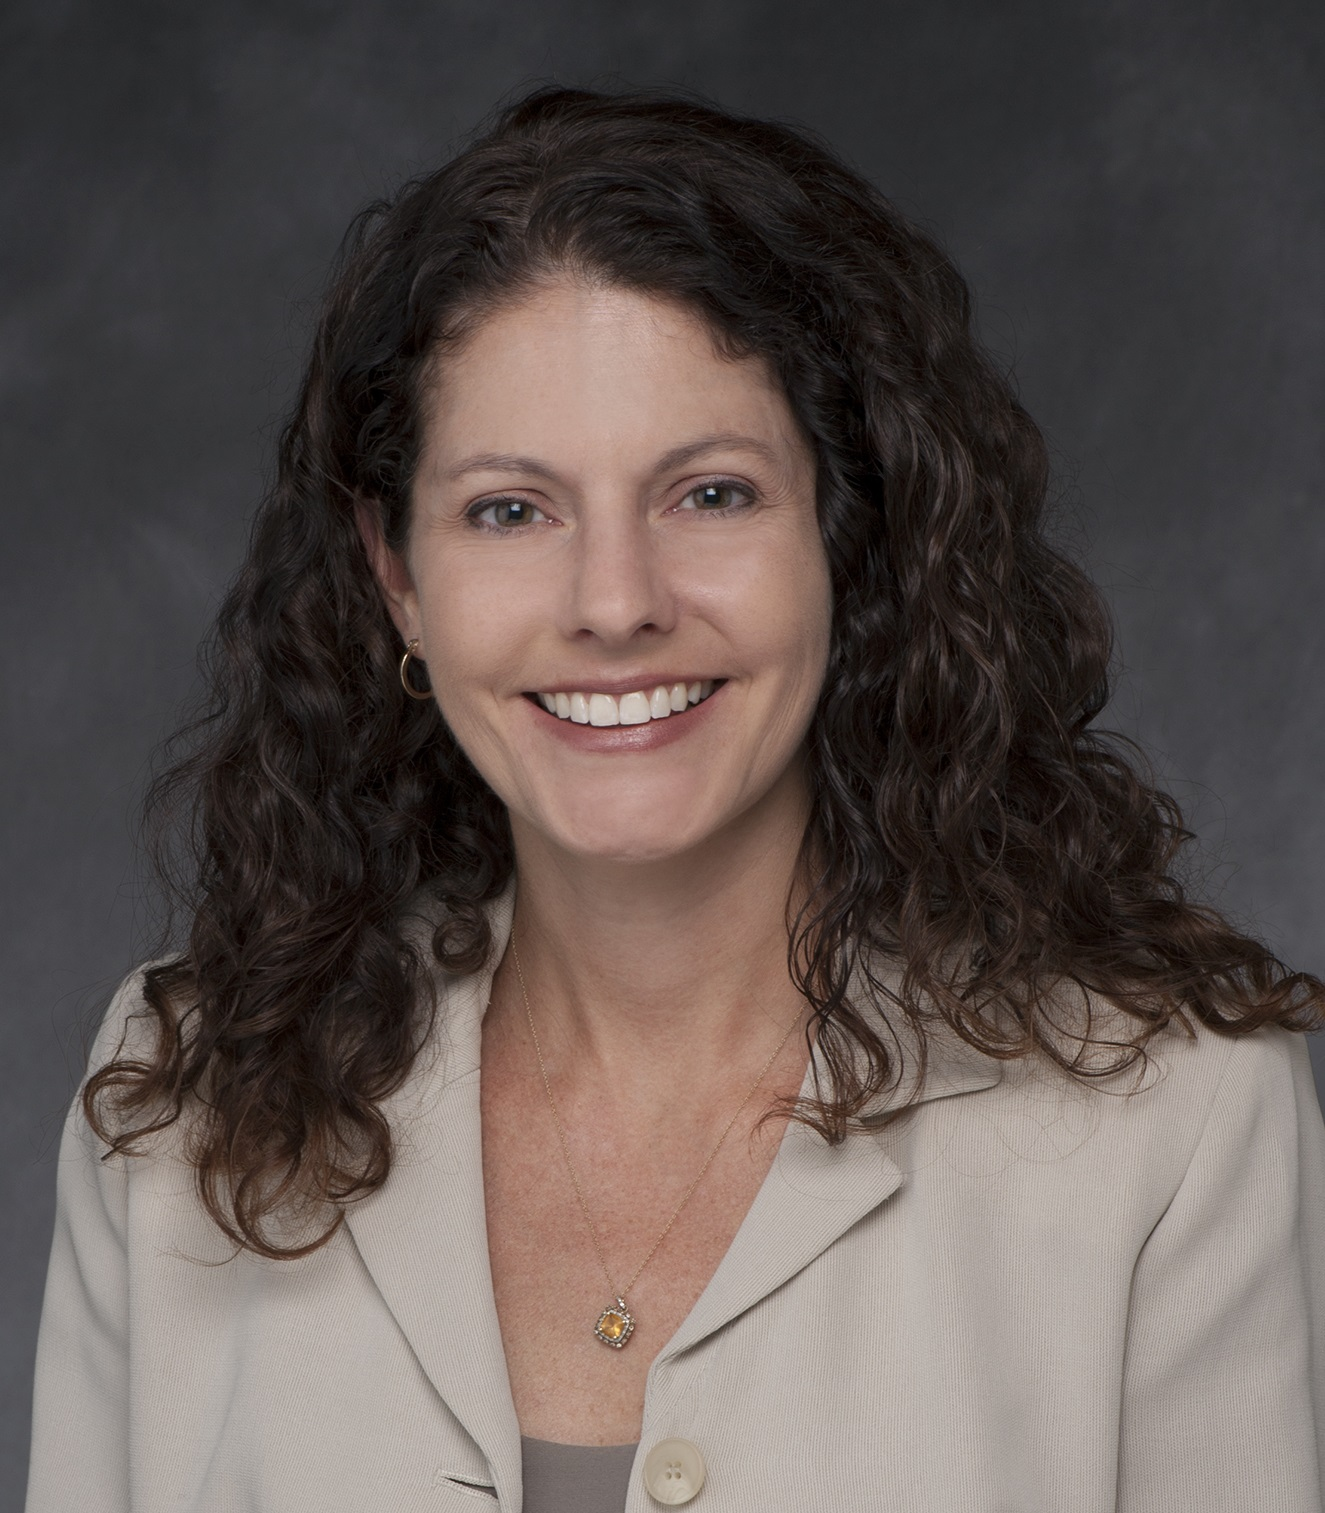 Heather K O'Toole, MD